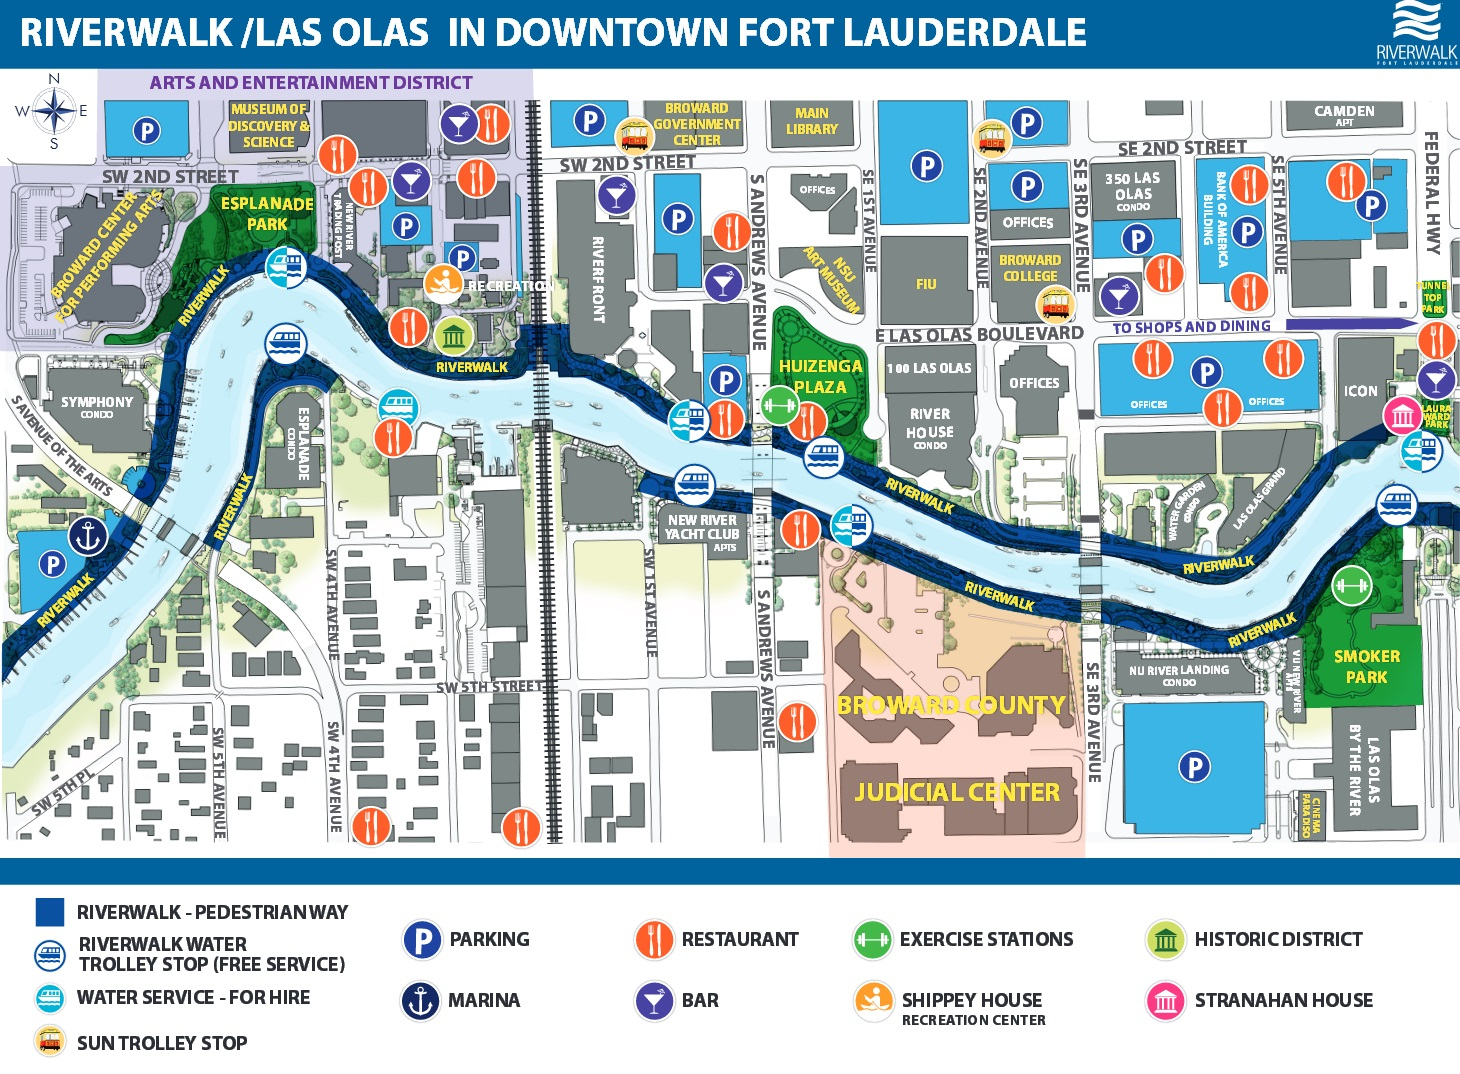 Riverwalk Fort Lauderdale – Information ◇ Events ◇ Advocacy - Street Map Of Fort Lauderdale Florida